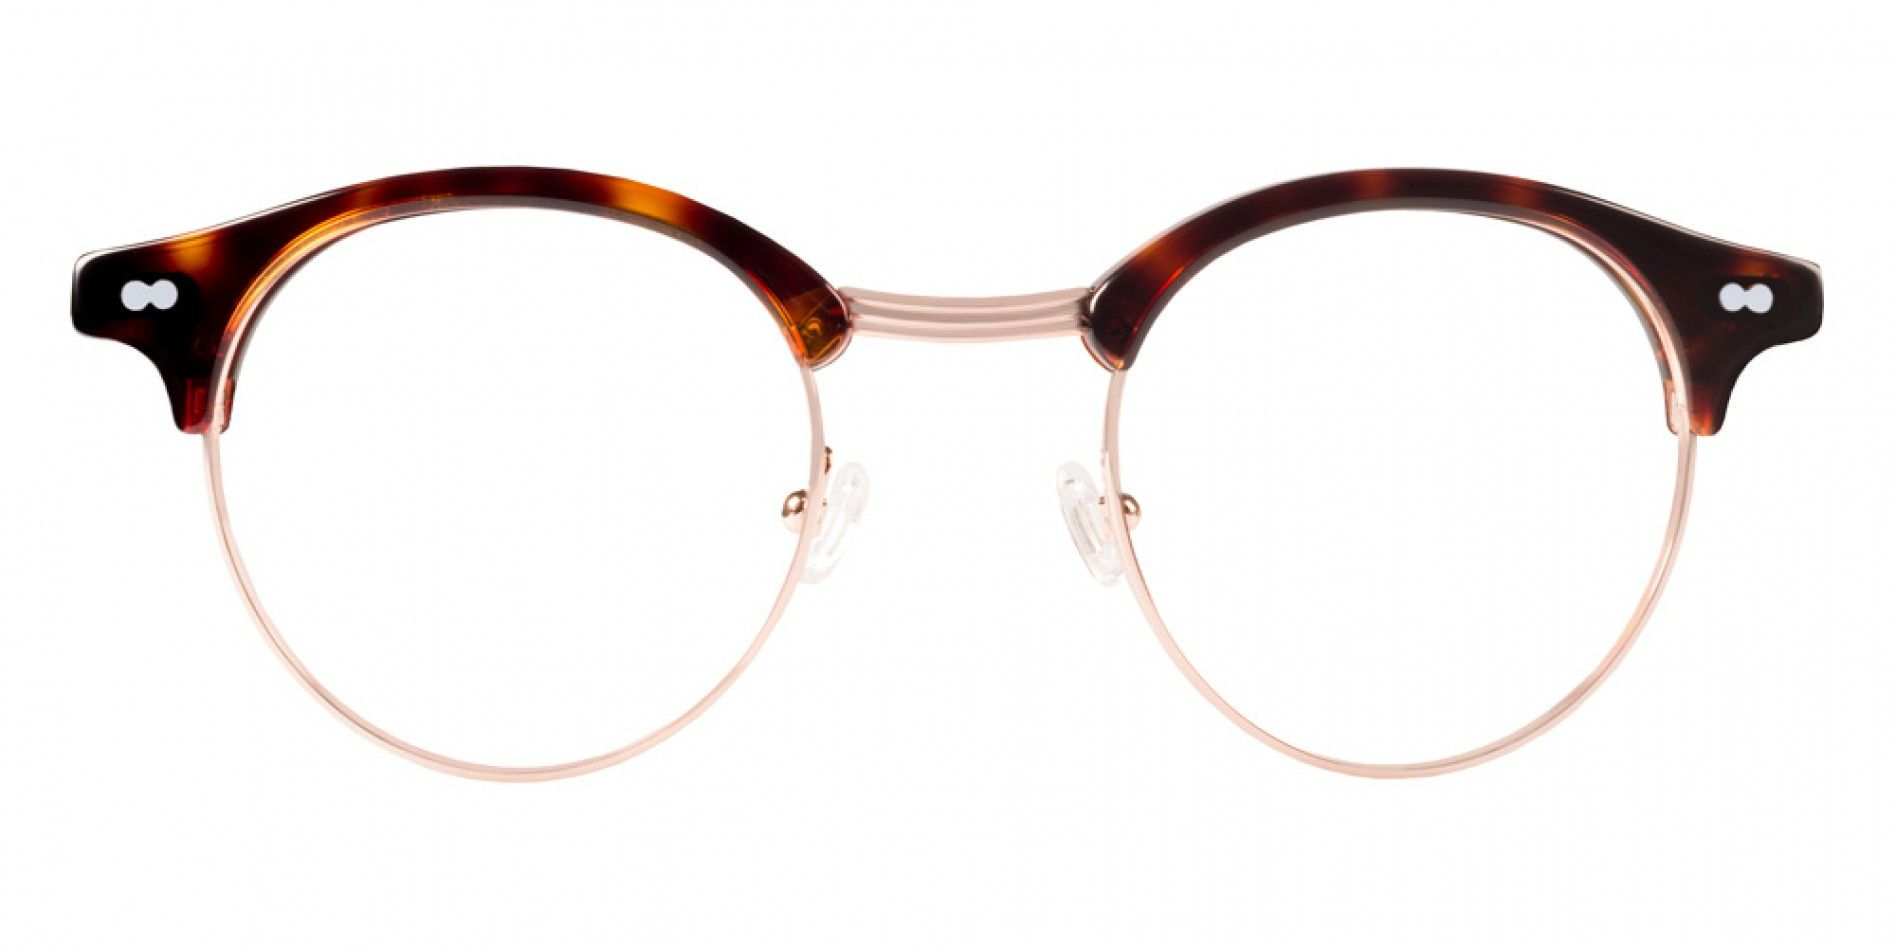 2a9d2ae451cf Rounded shapes and darker rims at the top flatter a square face shape AIDIM  from Moscot